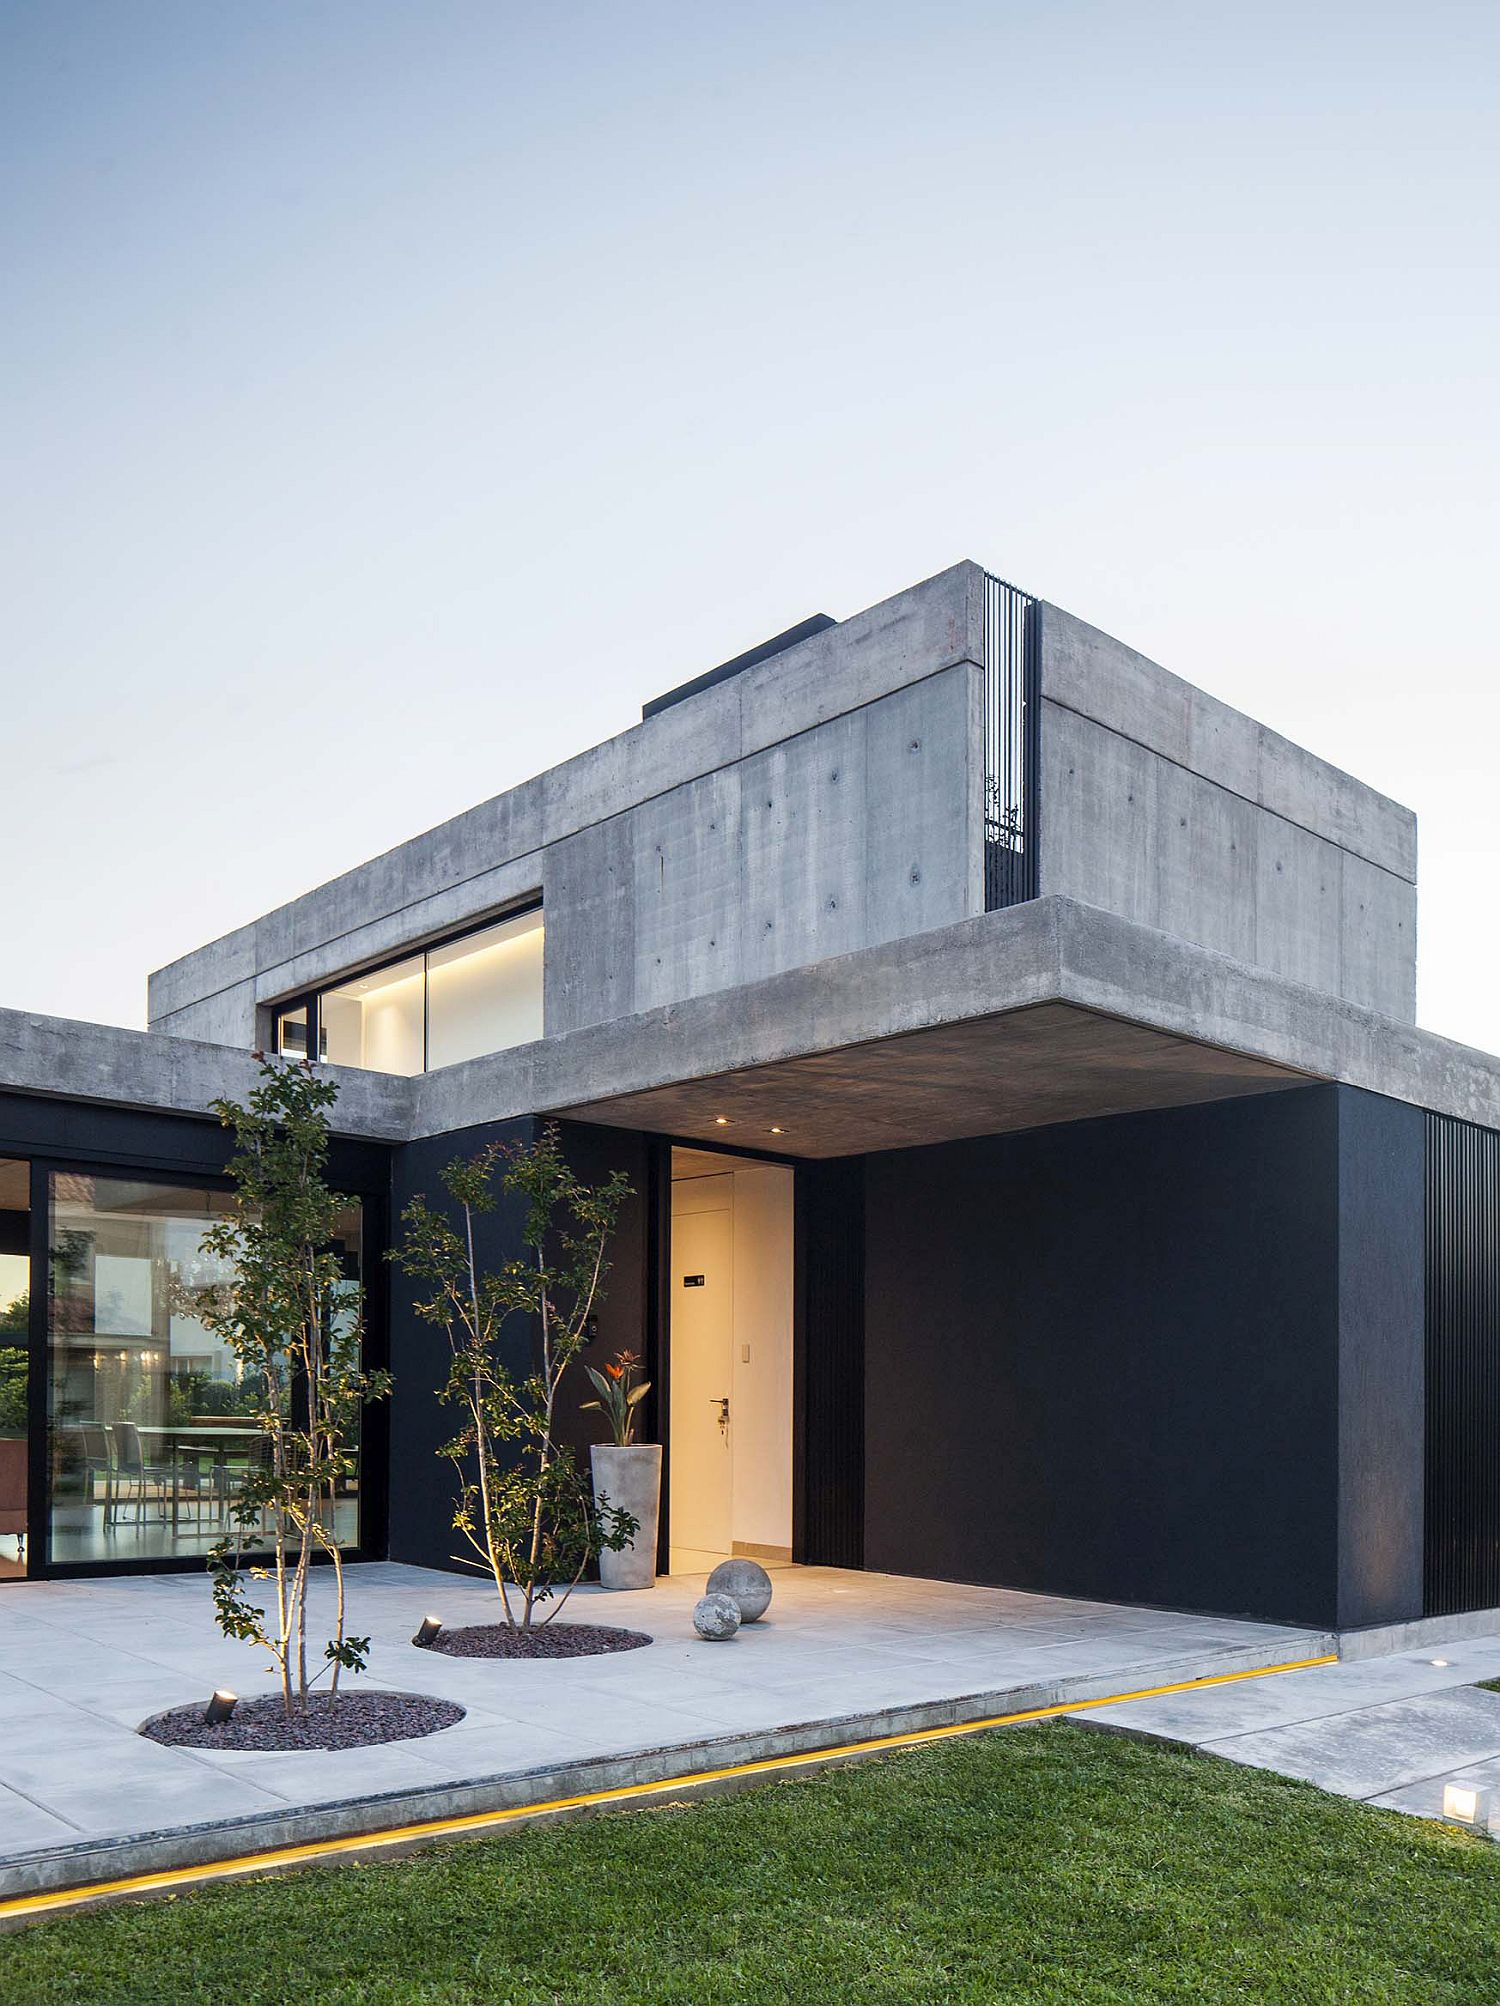 Concrete-and-glass-contemporary-home-in-Buenos-Aires-with-smart-responsive-design-68784